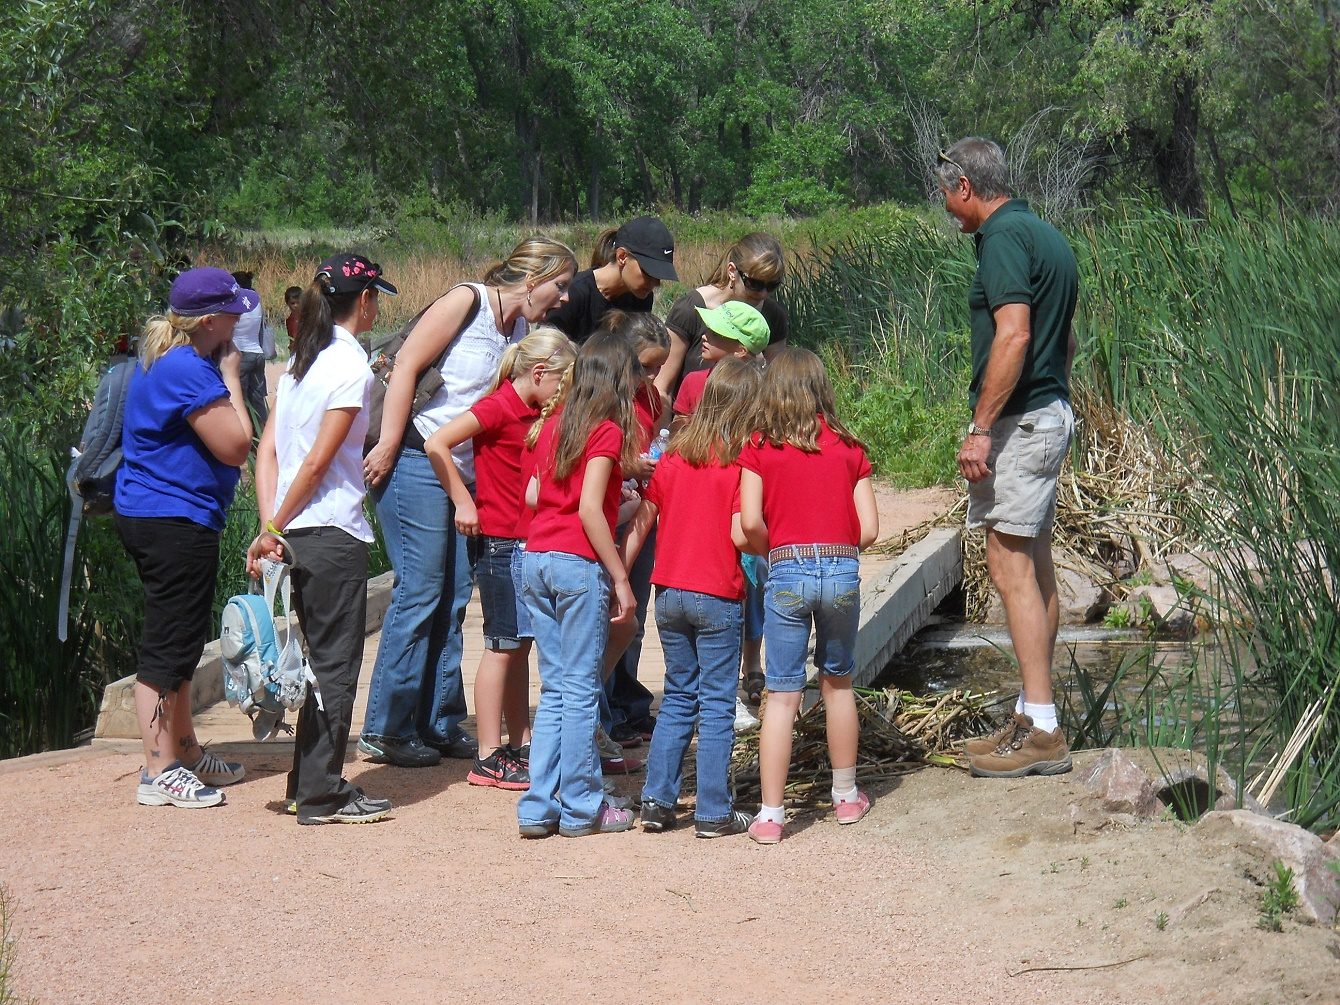 Students on a field trip examine a nature find by a bridge